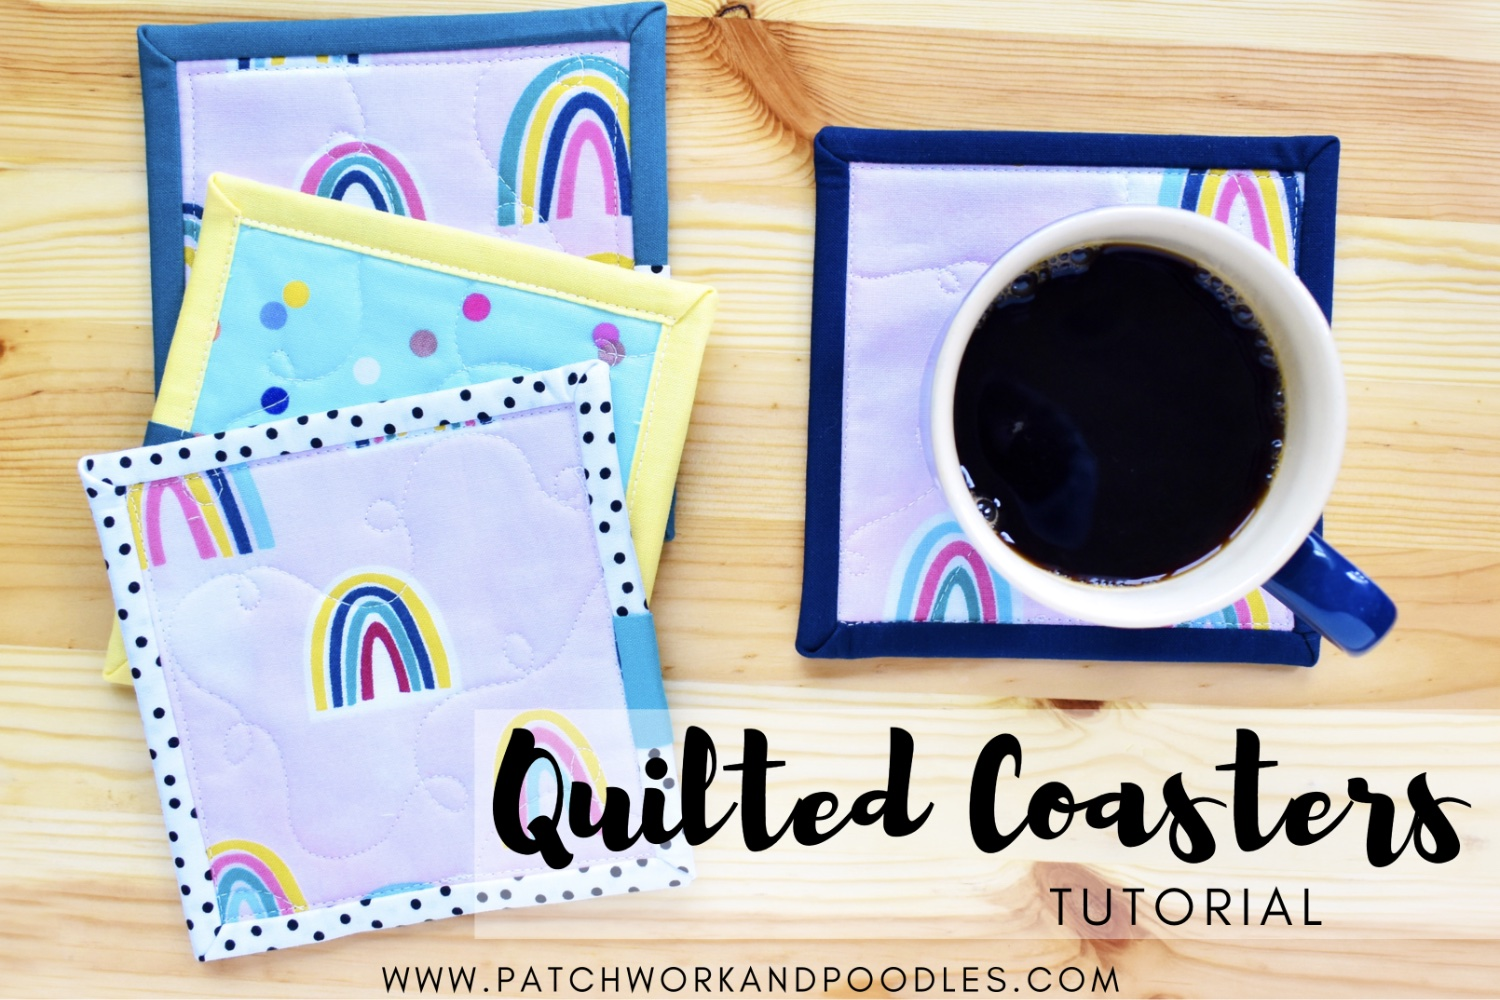 Quilted Coasters | Quick and Easy Tutorial